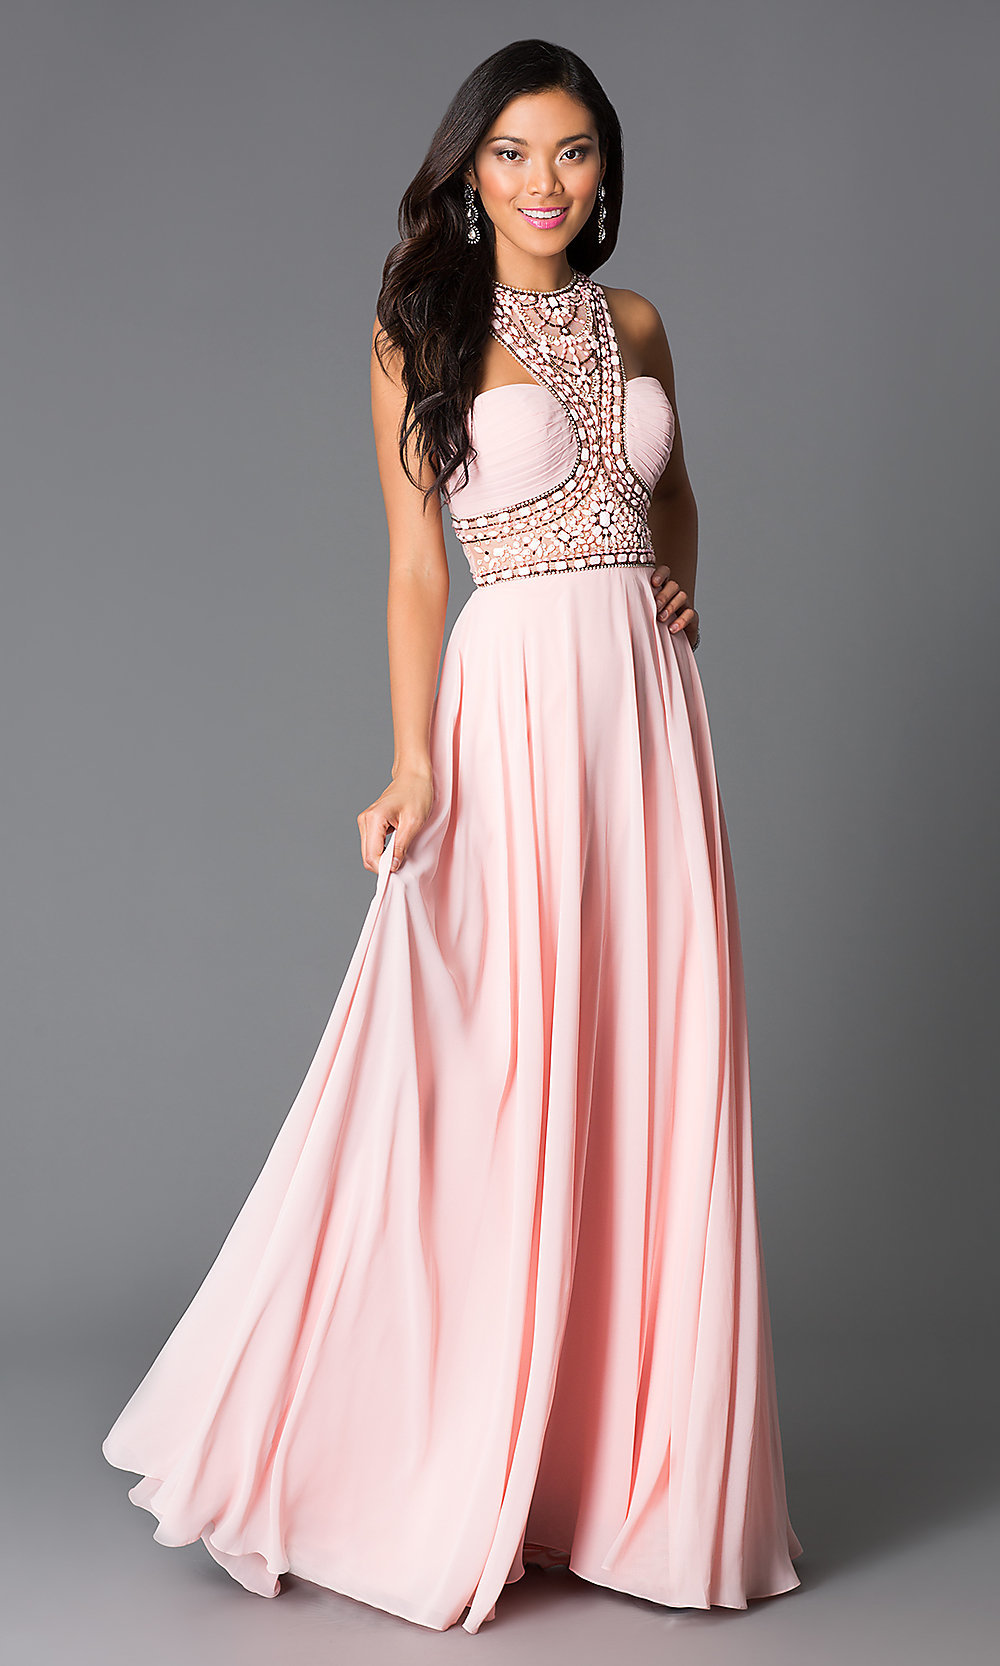 Images of Prom Dresses Pink - Reikian